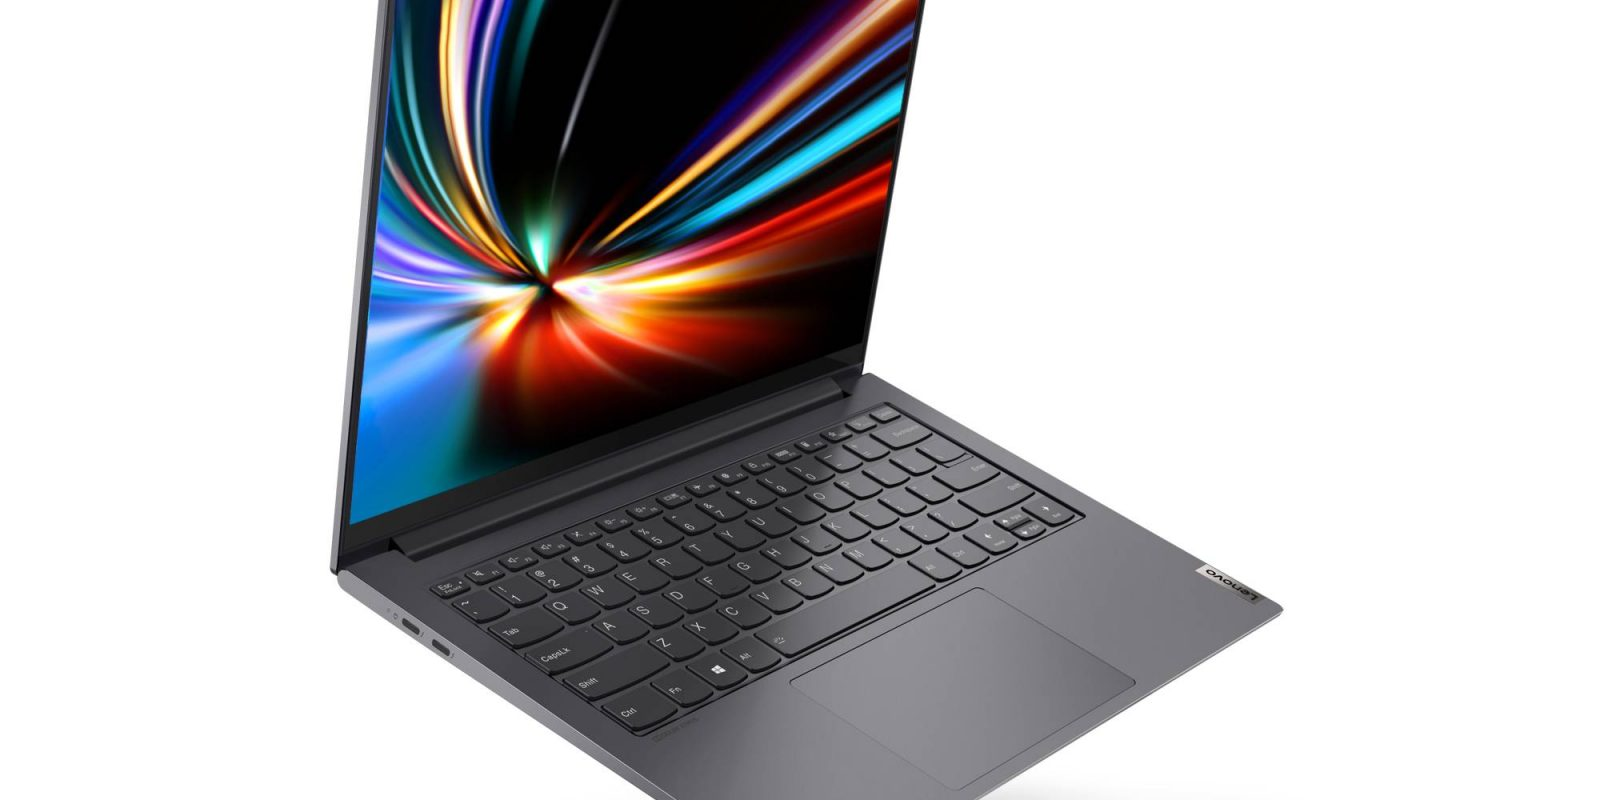 Lenovo announces 14-inch Yoga Slim 7i Pro laptop